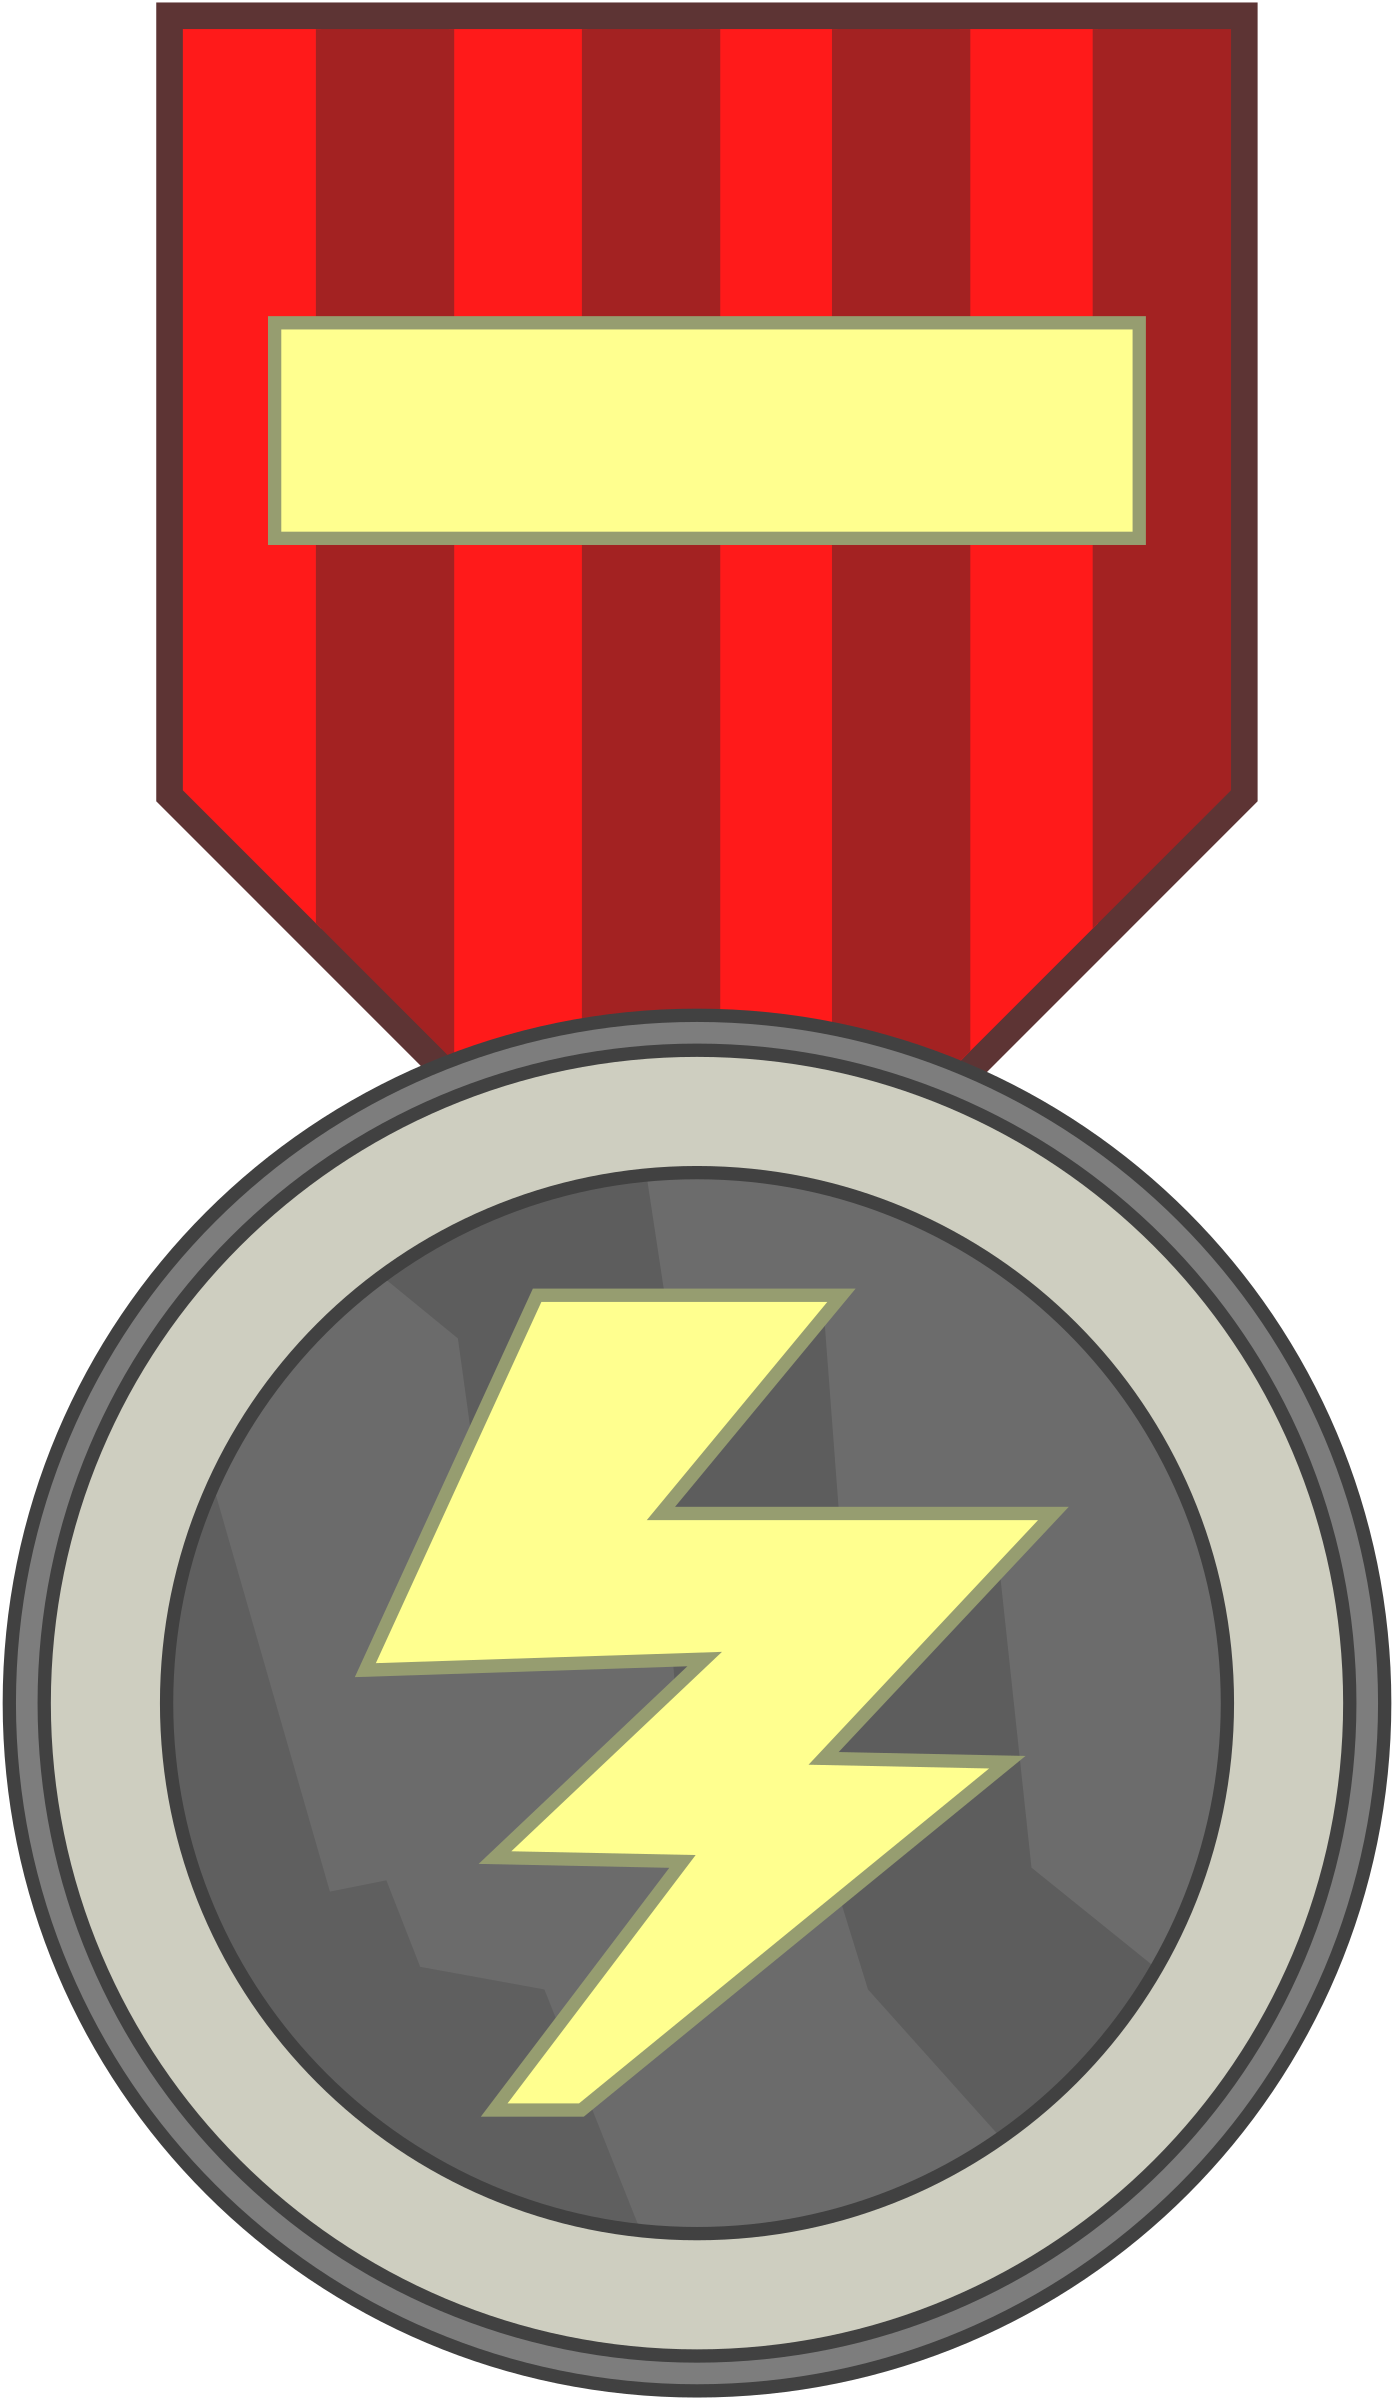 Medal drawing platinum. Best professionalcriticizmtoken image